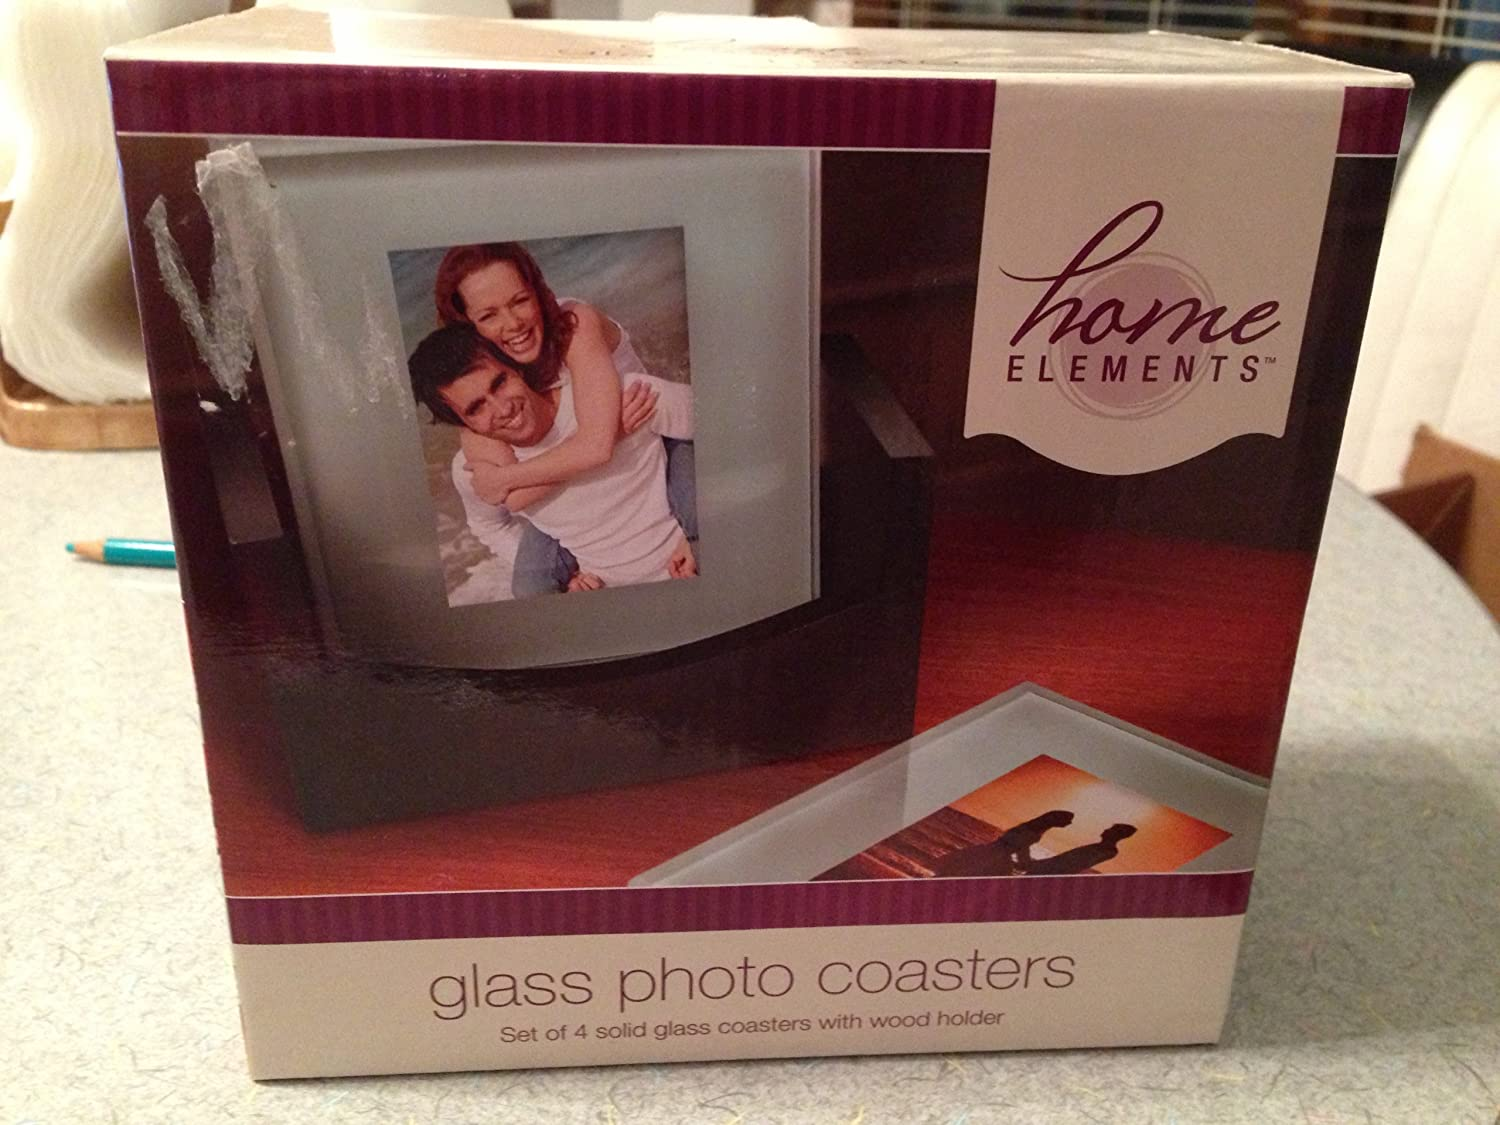 Home Elements Glass Photo Coaster COMINHKR041564